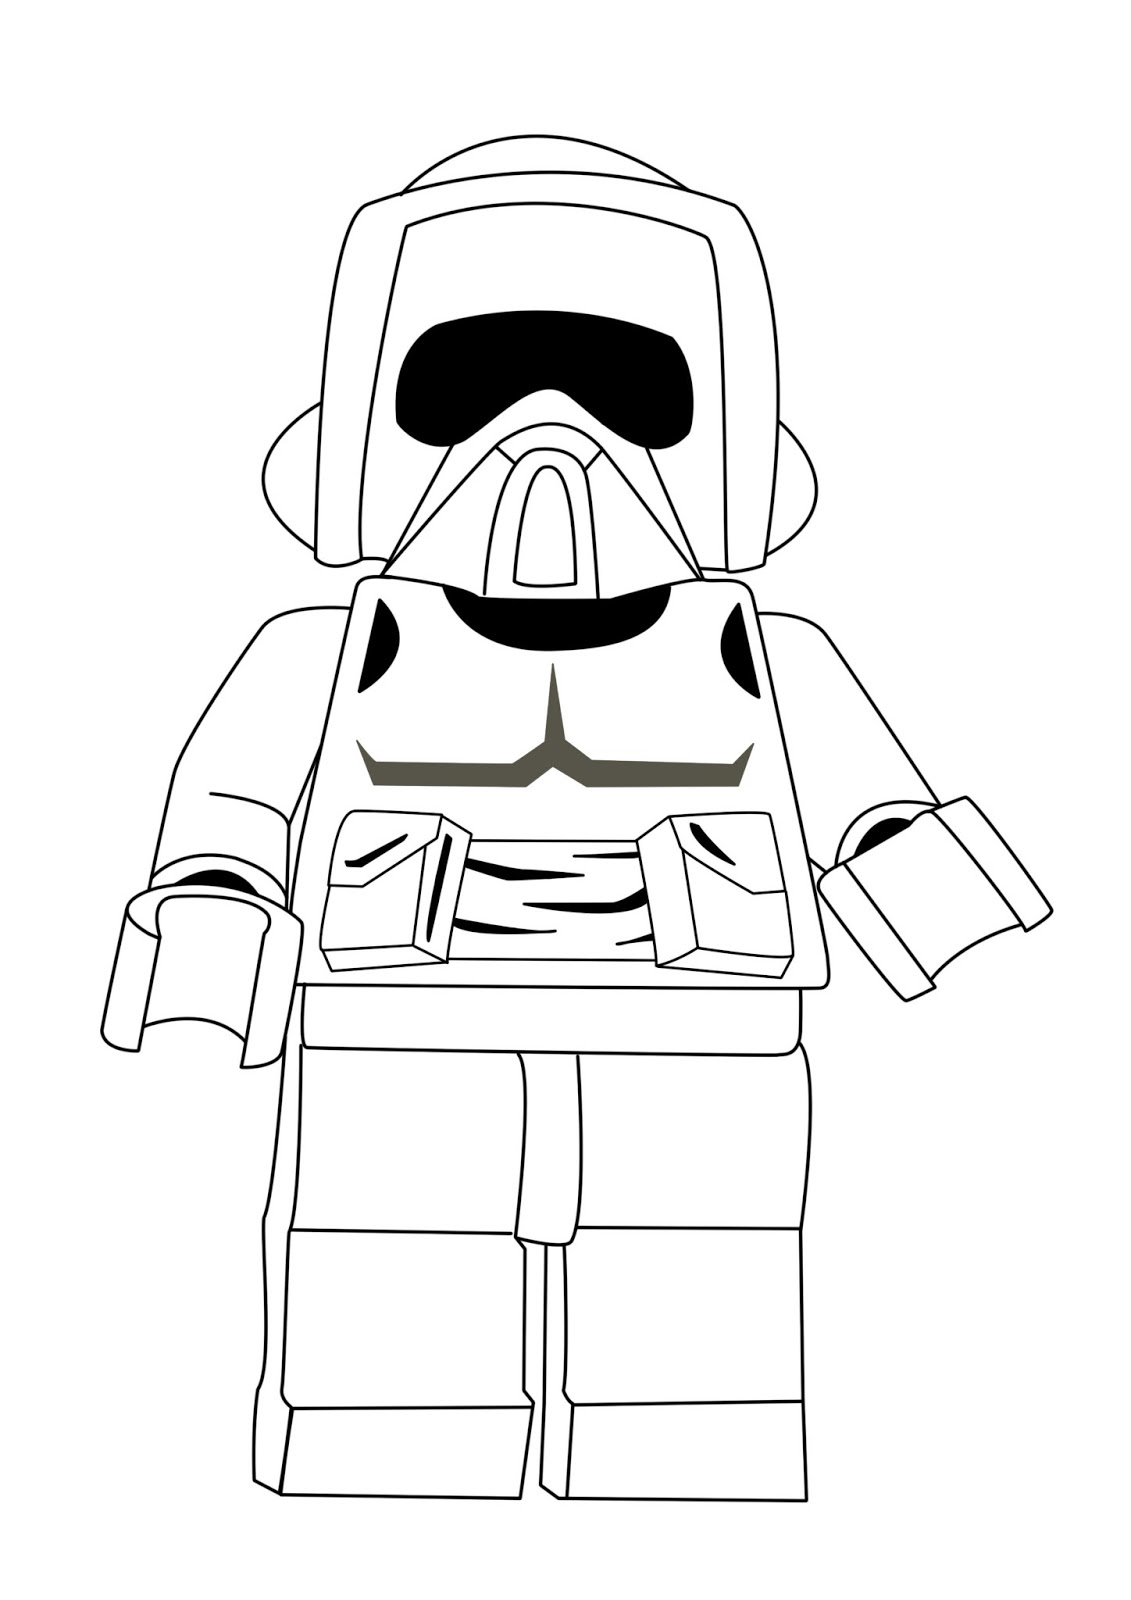 free lego star wars coloring pages lego star wars coloring pages best coloring pages for kids lego wars star pages free coloring